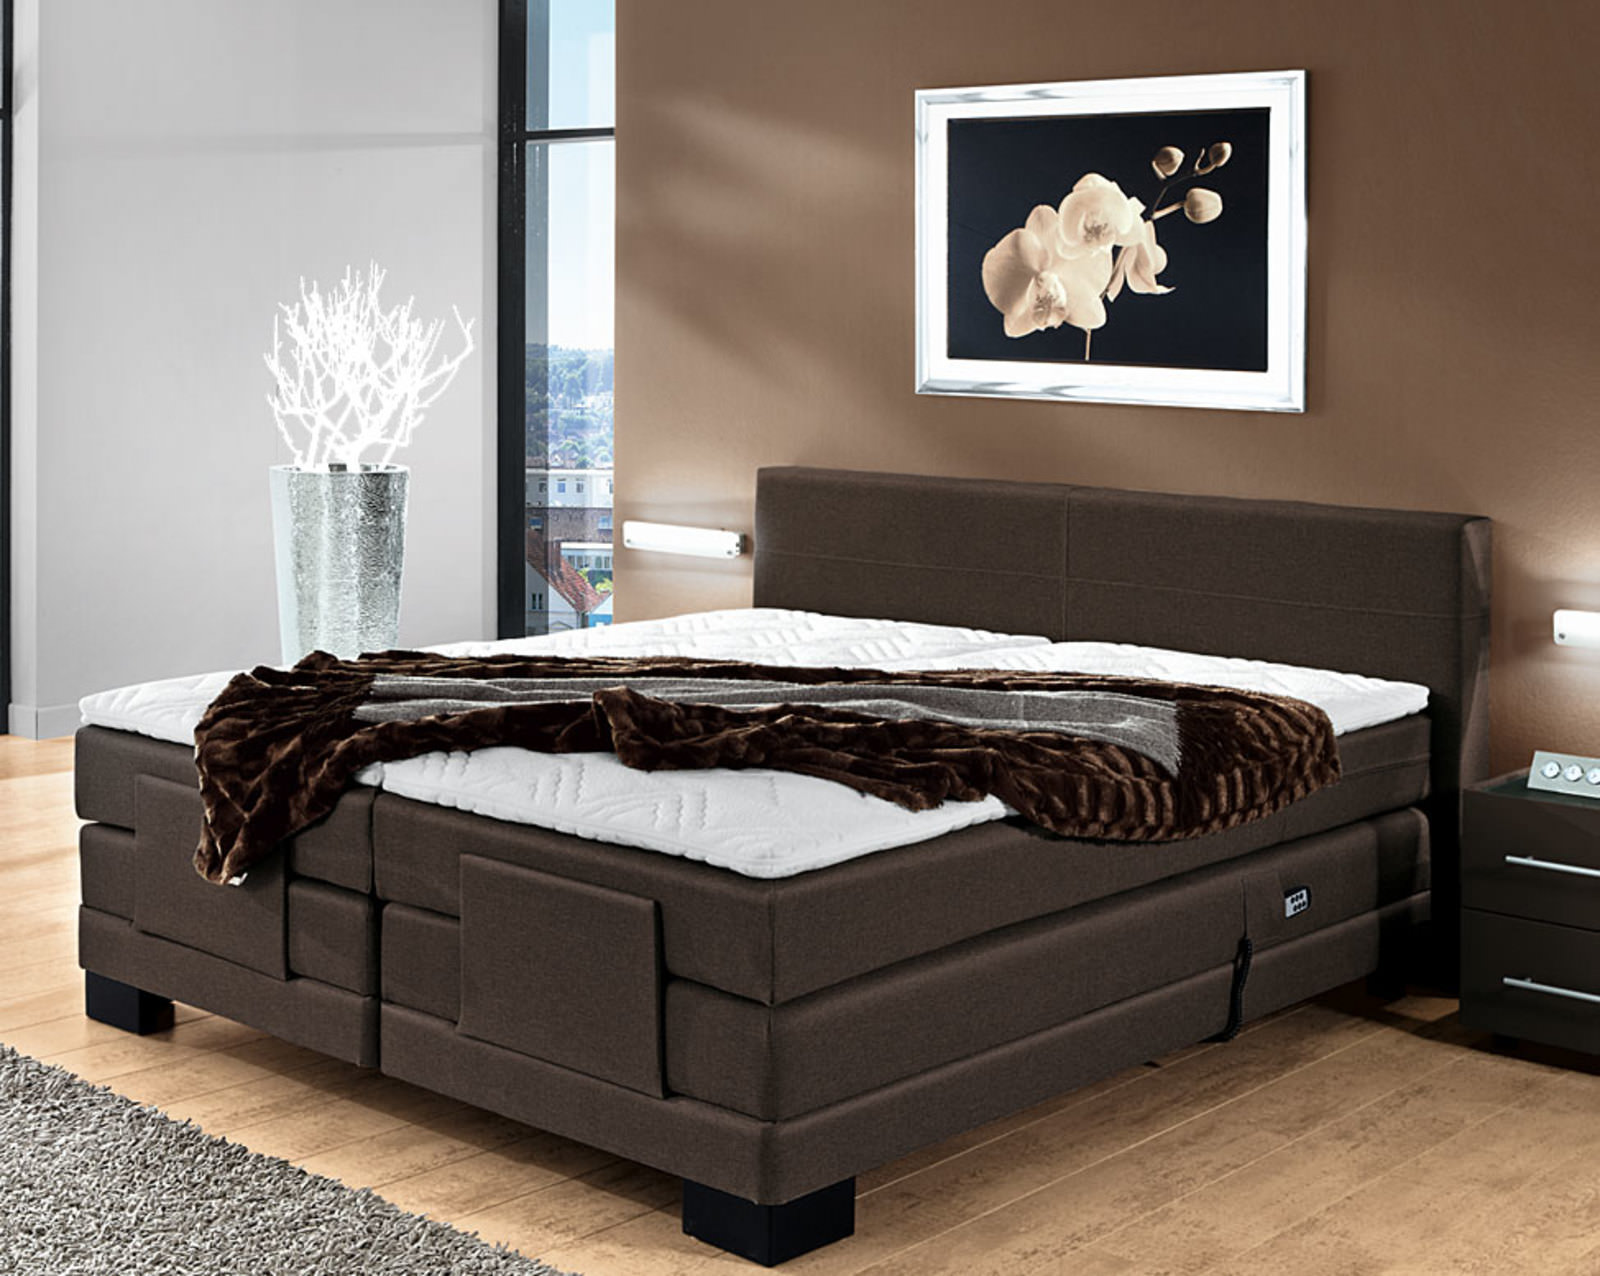 boxspringbett online entdecken knuffmann ihr m belhaus. Black Bedroom Furniture Sets. Home Design Ideas